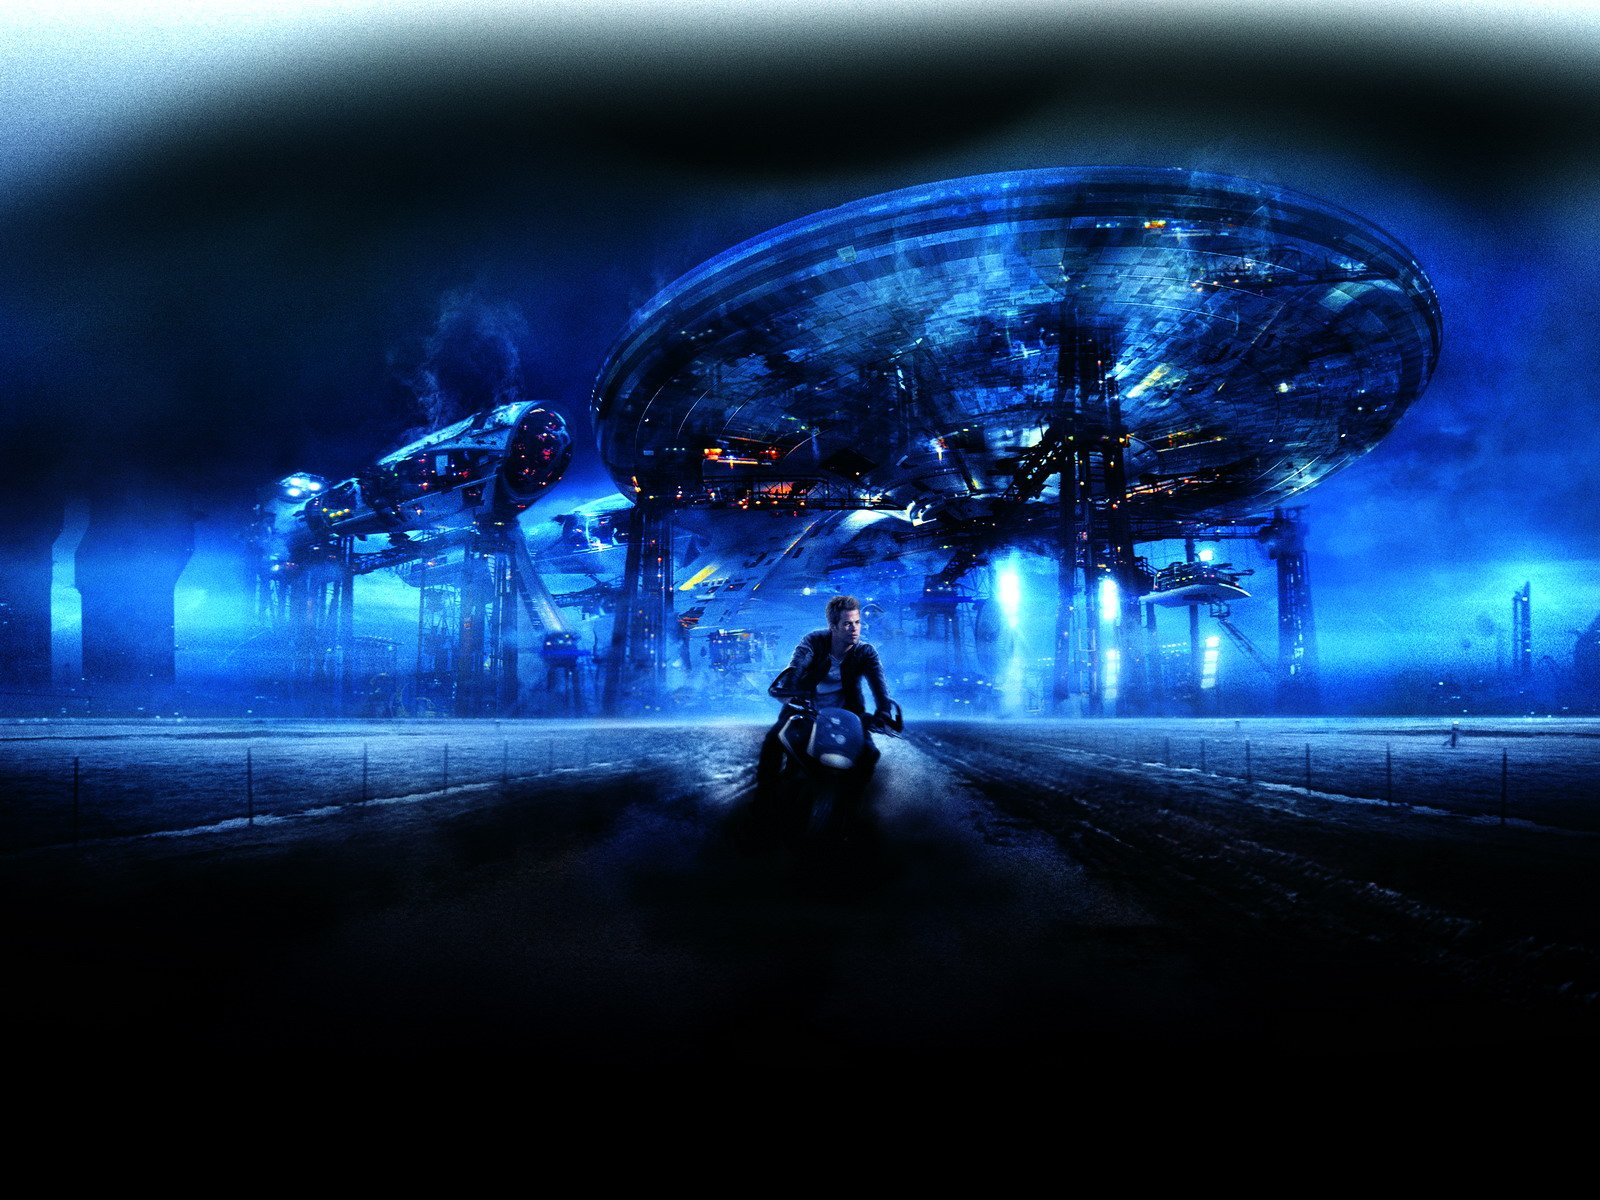 Star Trek 2009 wallpaper   FreeMovieWallpapersorg 1600x1200